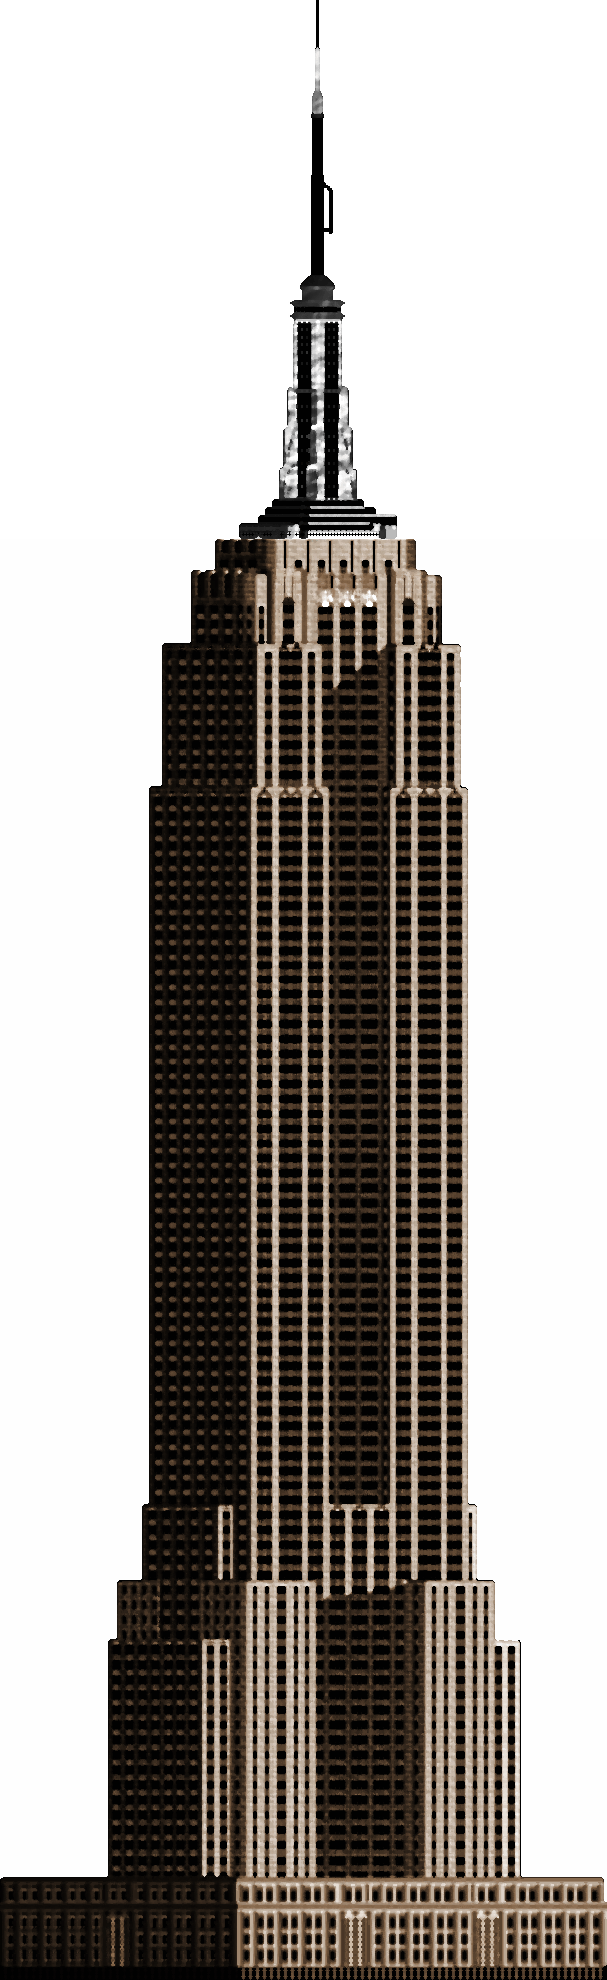 . Tower clipart office tower